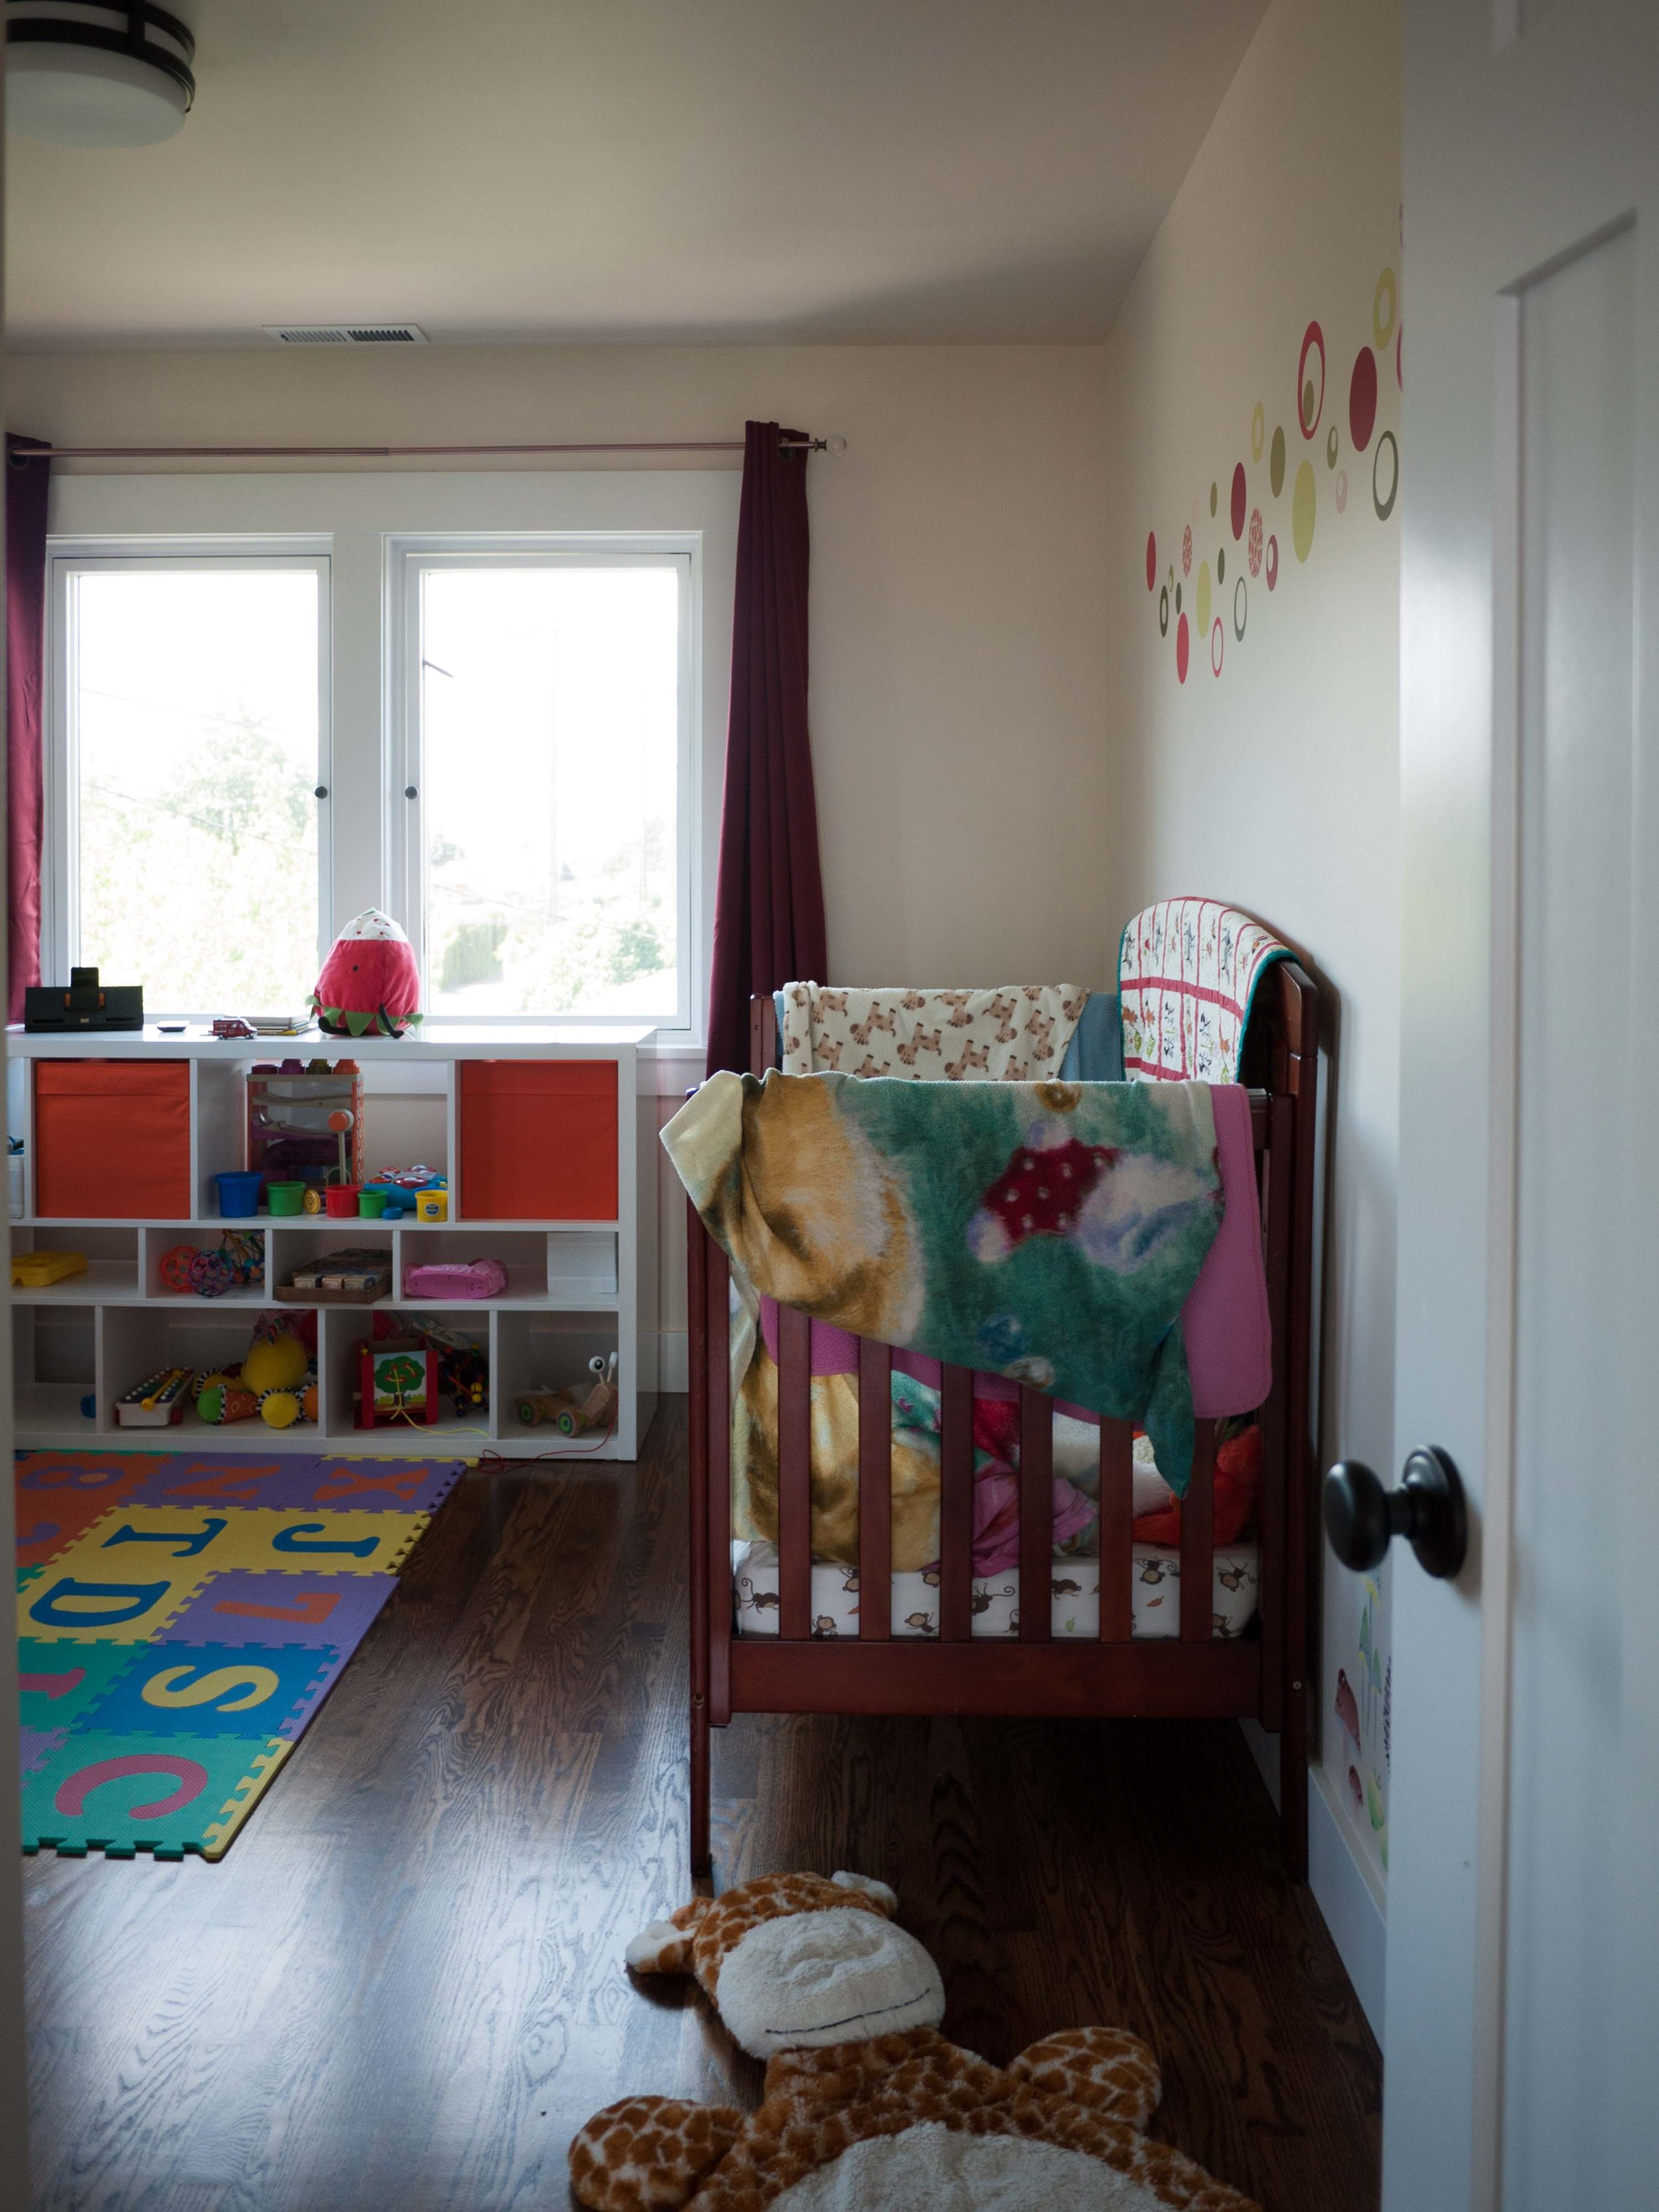 The other kid's room.